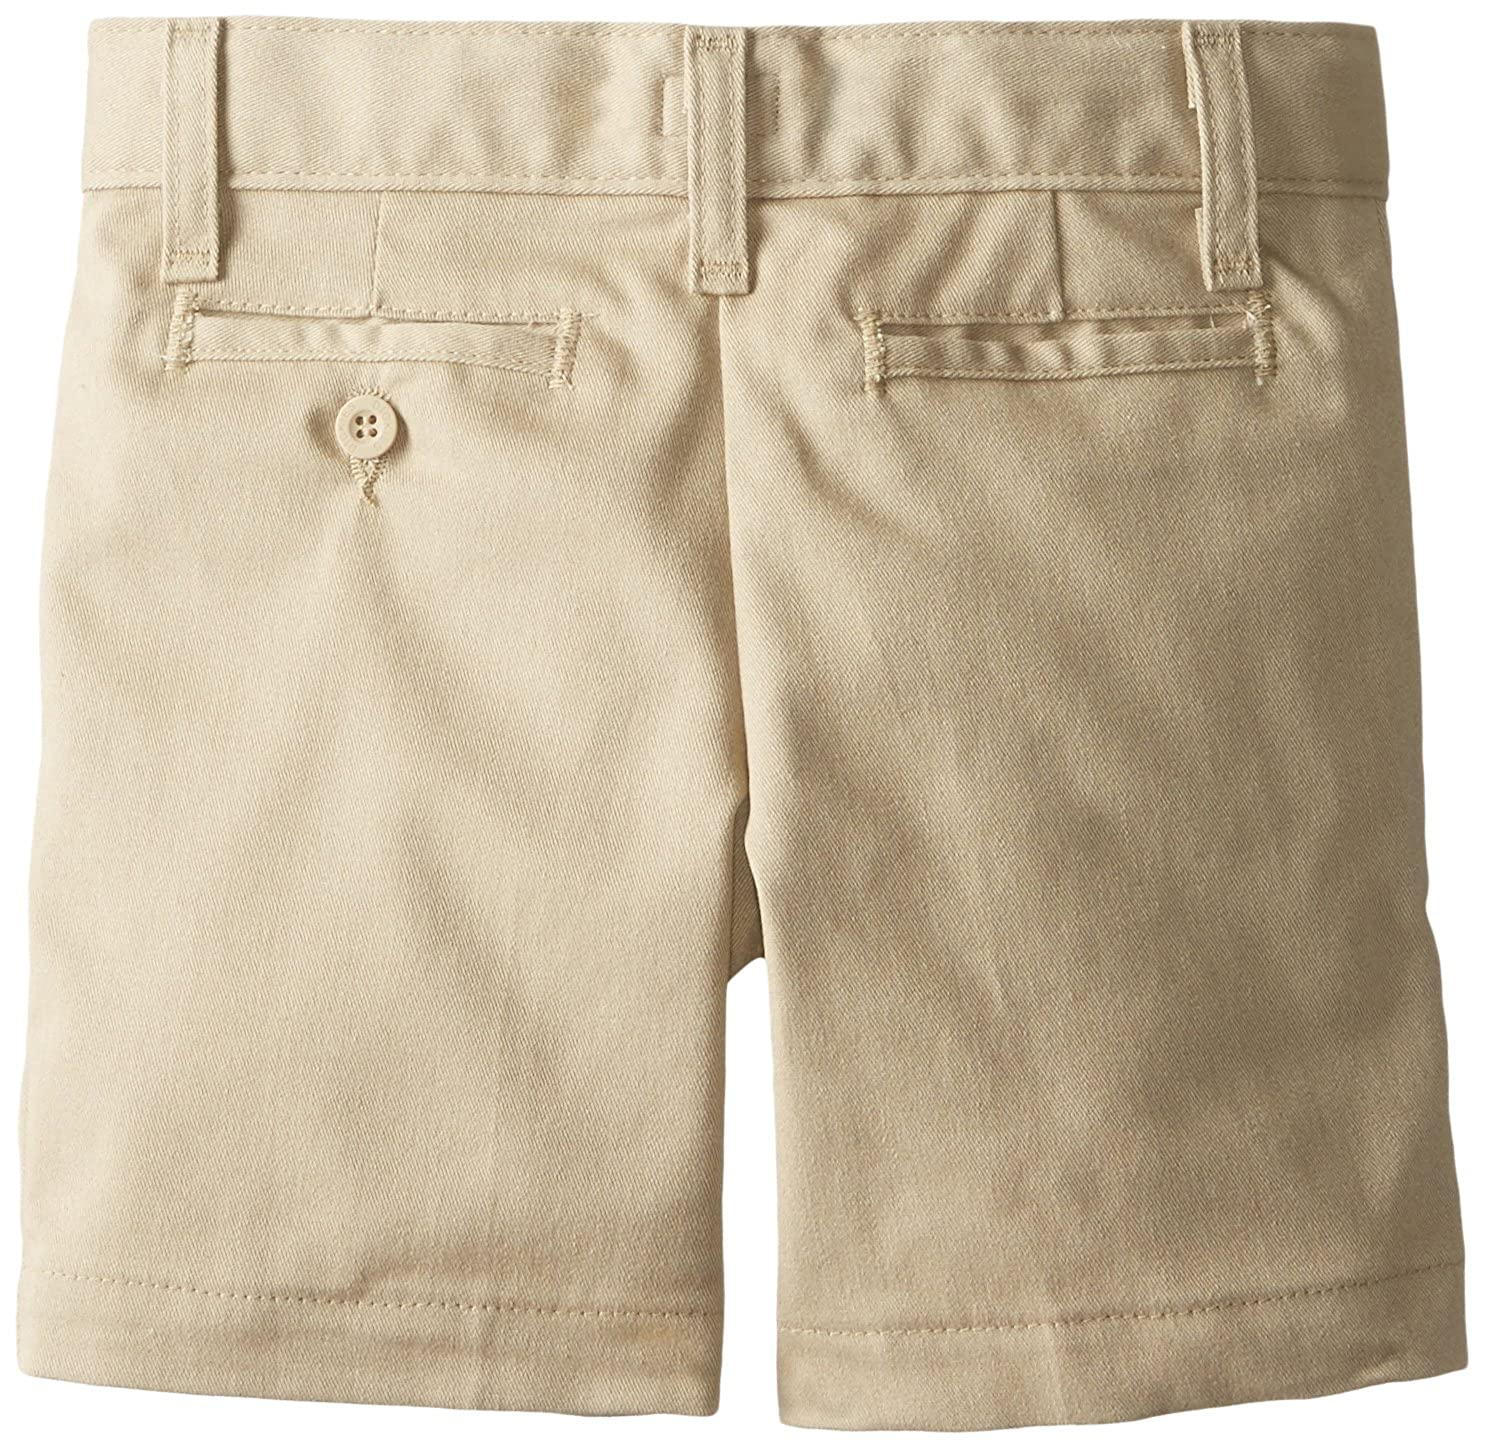 Dickies Khaki Little Boys Flex Waist Stretch Flat Front Short Preschool